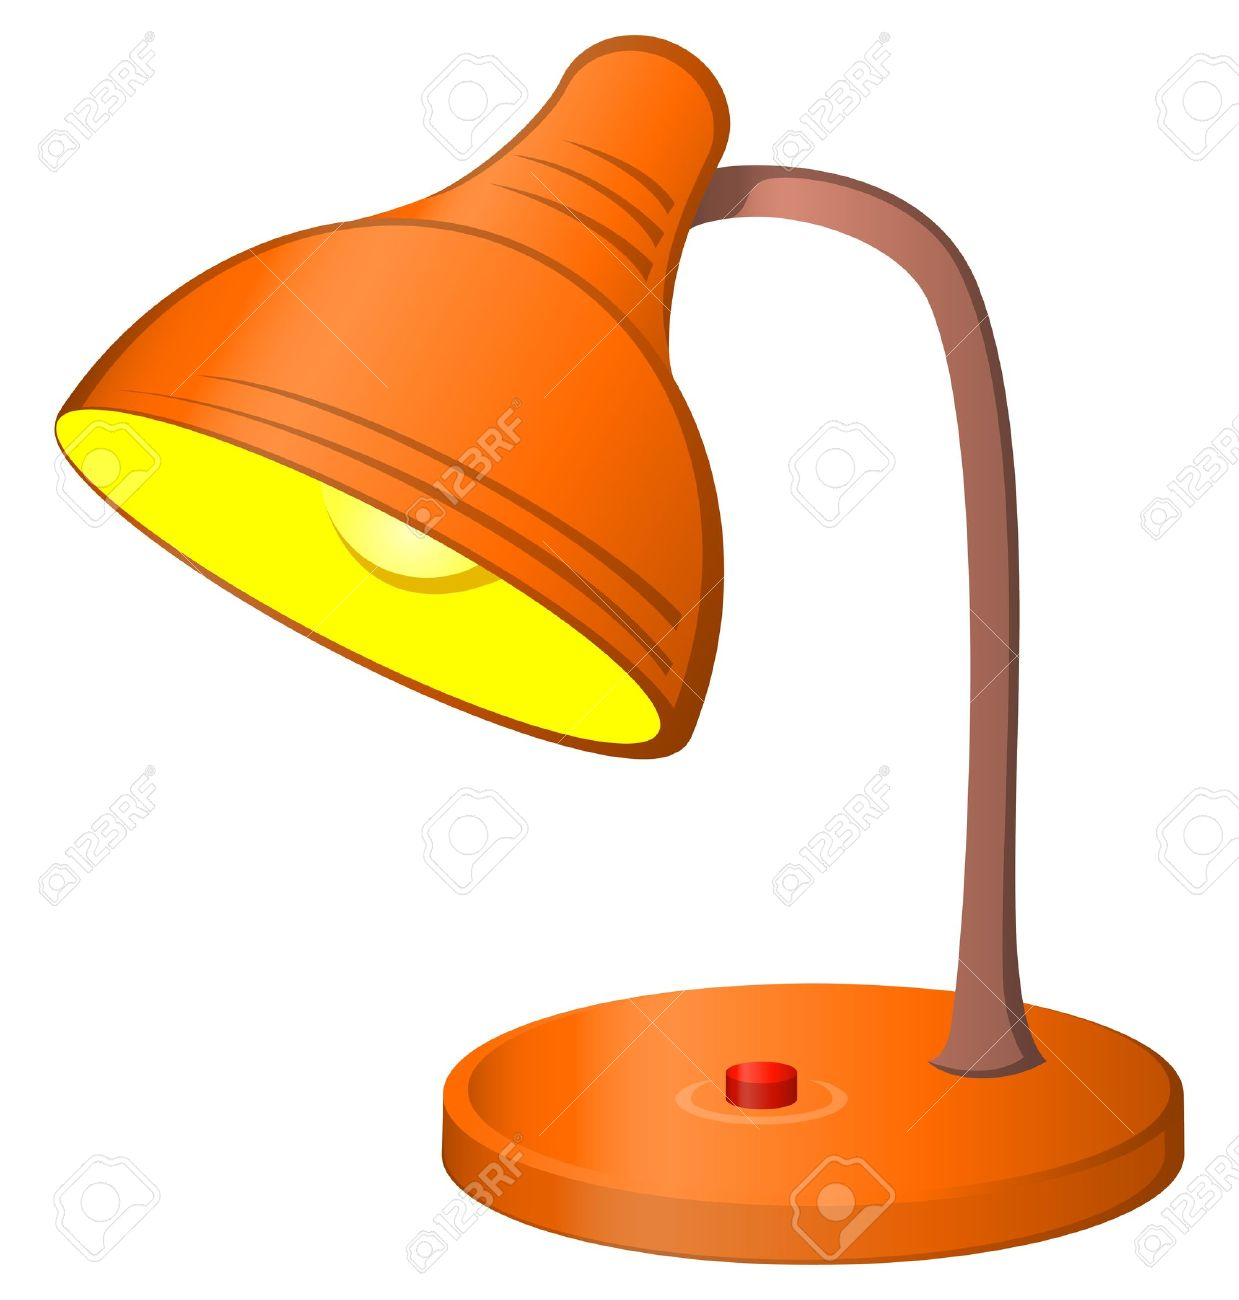 Free download best on. Lamp clipart lampara